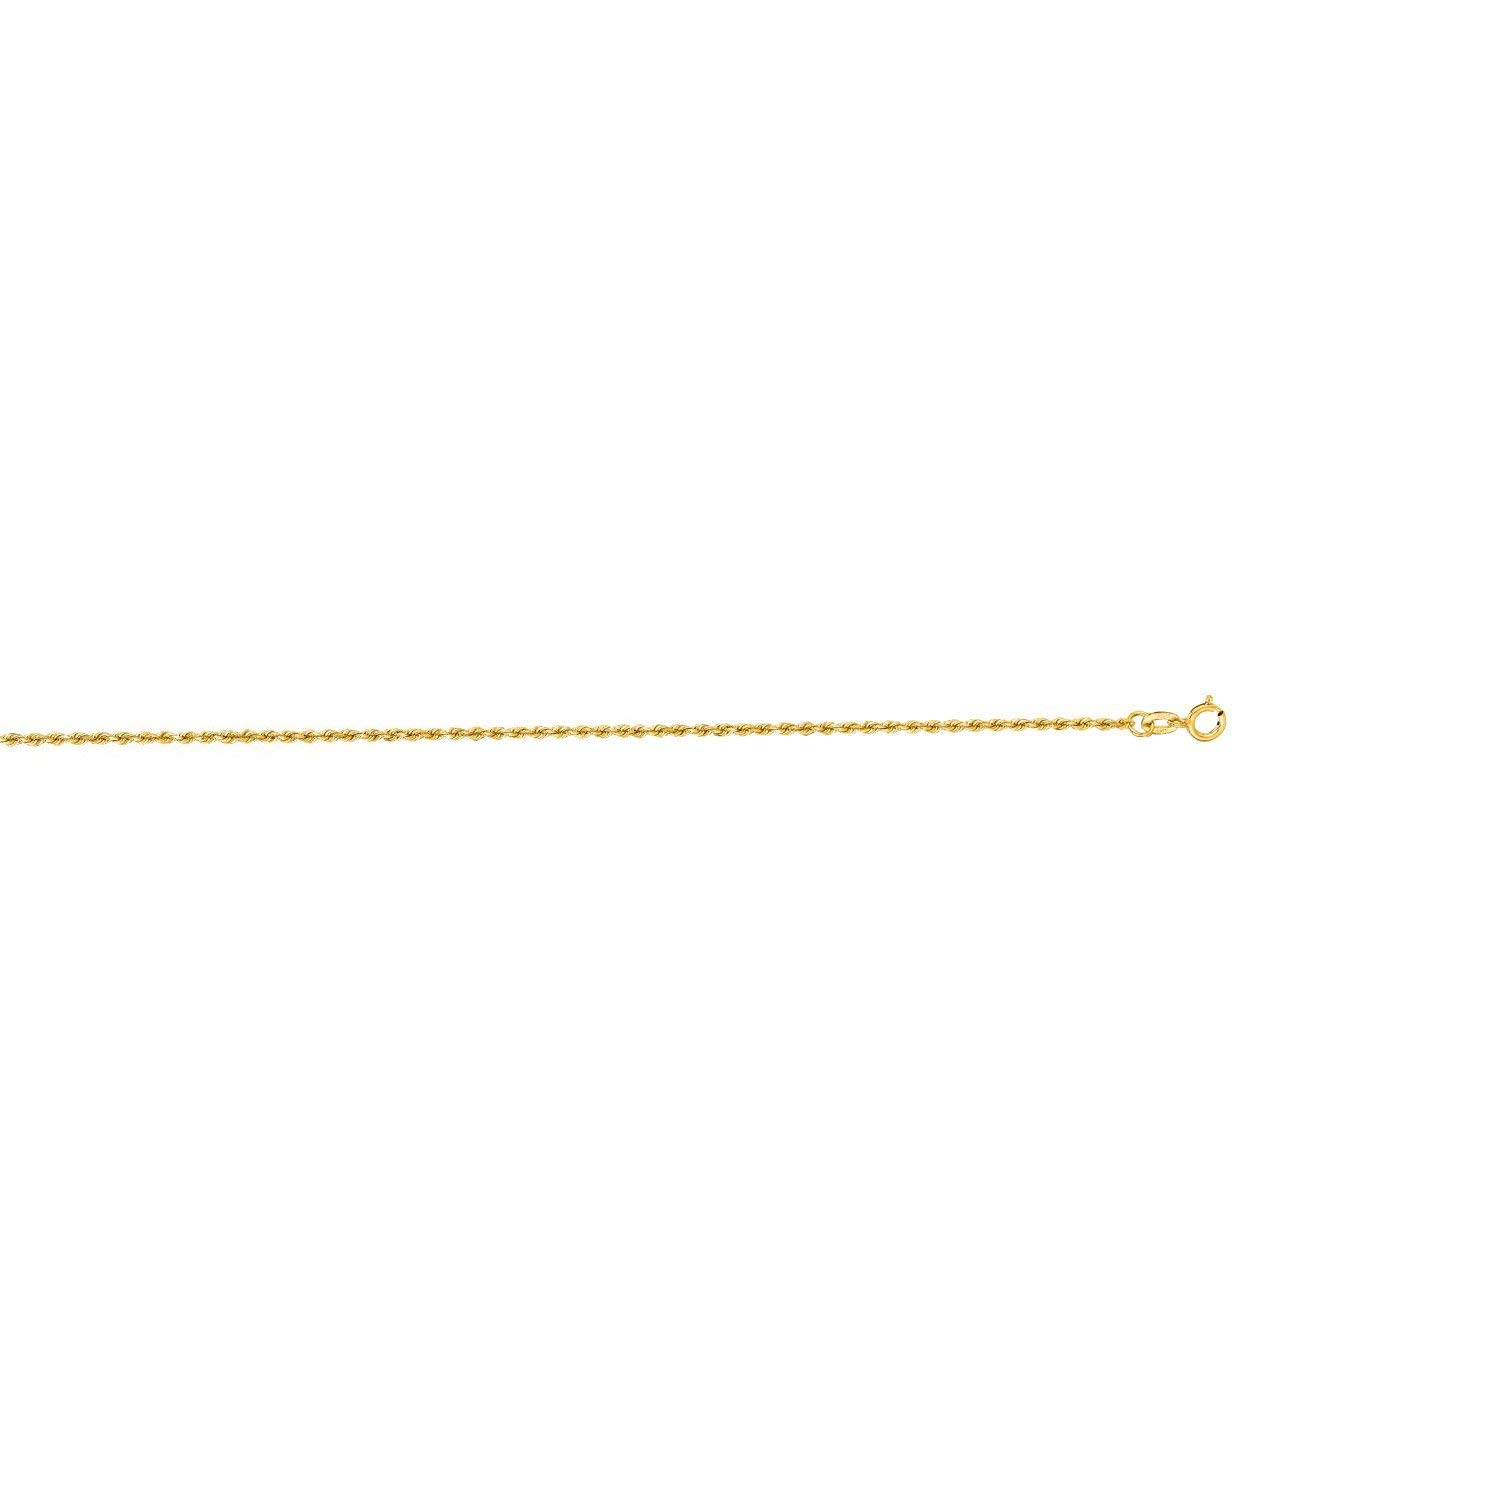 10K Yellow Gold 3.5mm Shiny Solid Diamond Cut Royal Rope Chain Bracelet with Lobster Clasp